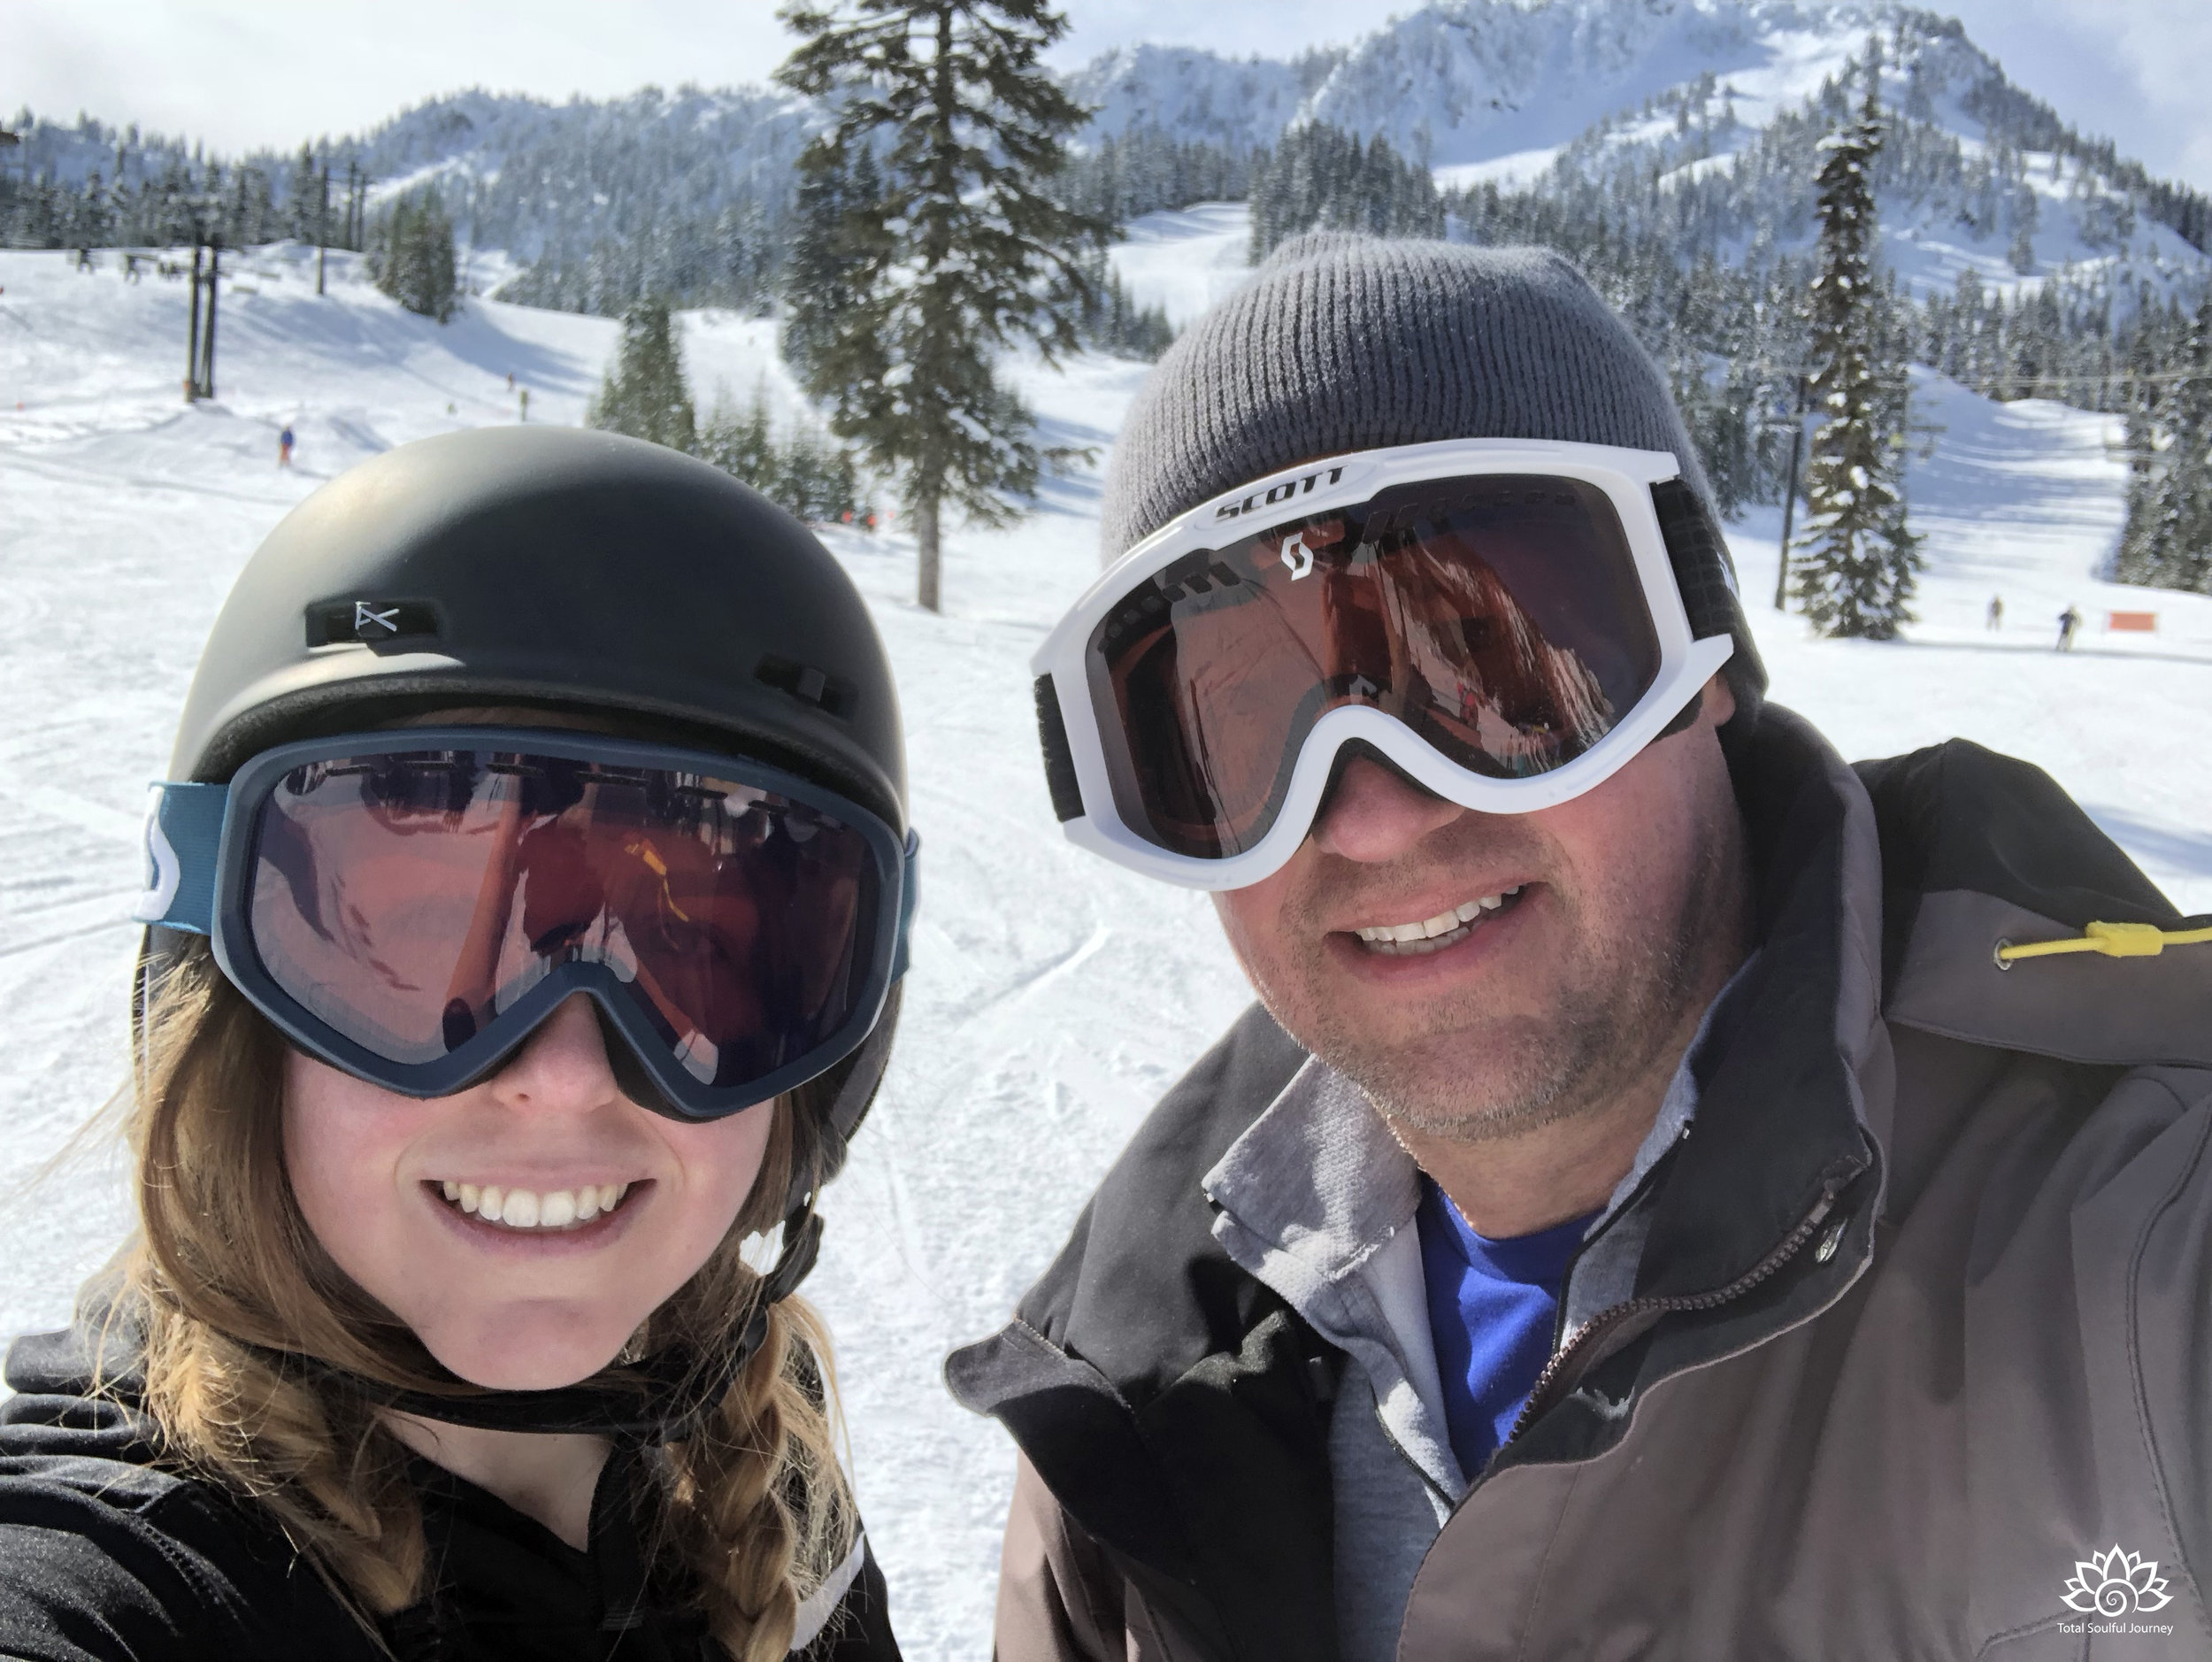 Skiing with my daughter at Steven's Pass in Washington State.